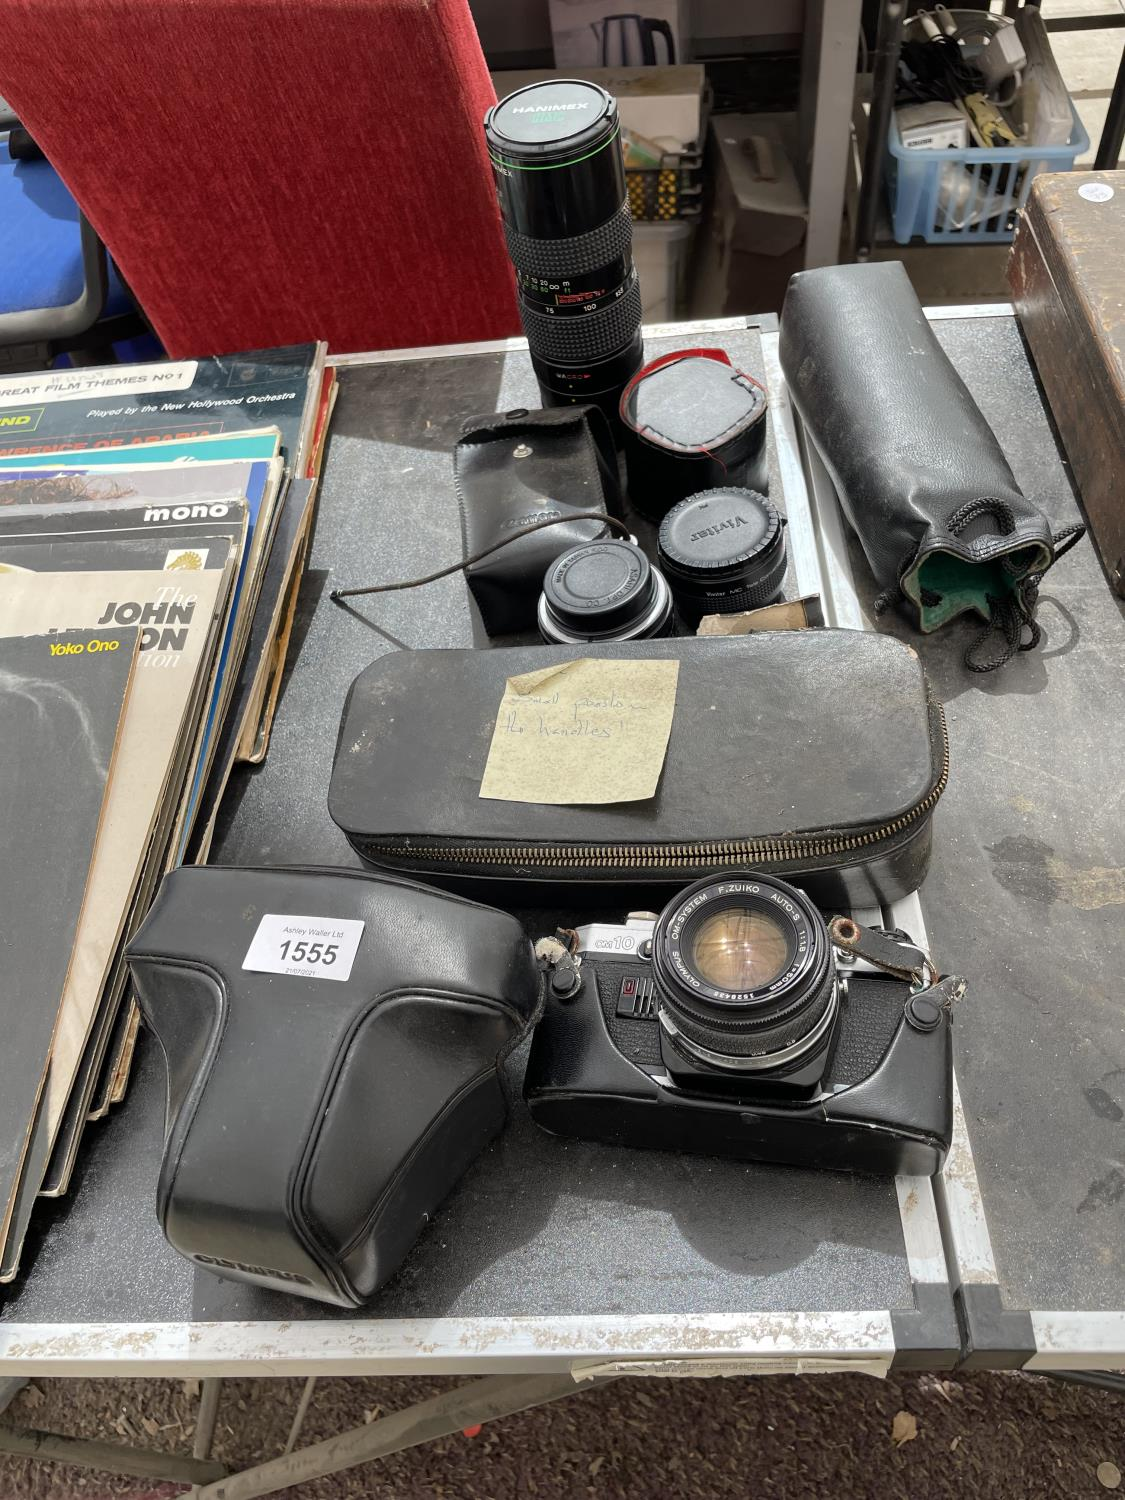 AN ASSORTMENT OF CAMERA EQUIPMENT TO INCLUDE HANIMEX AUTOZOOM LENS, OLYMPUS C10 CAMERA AND VIVITAR - Image 2 of 4